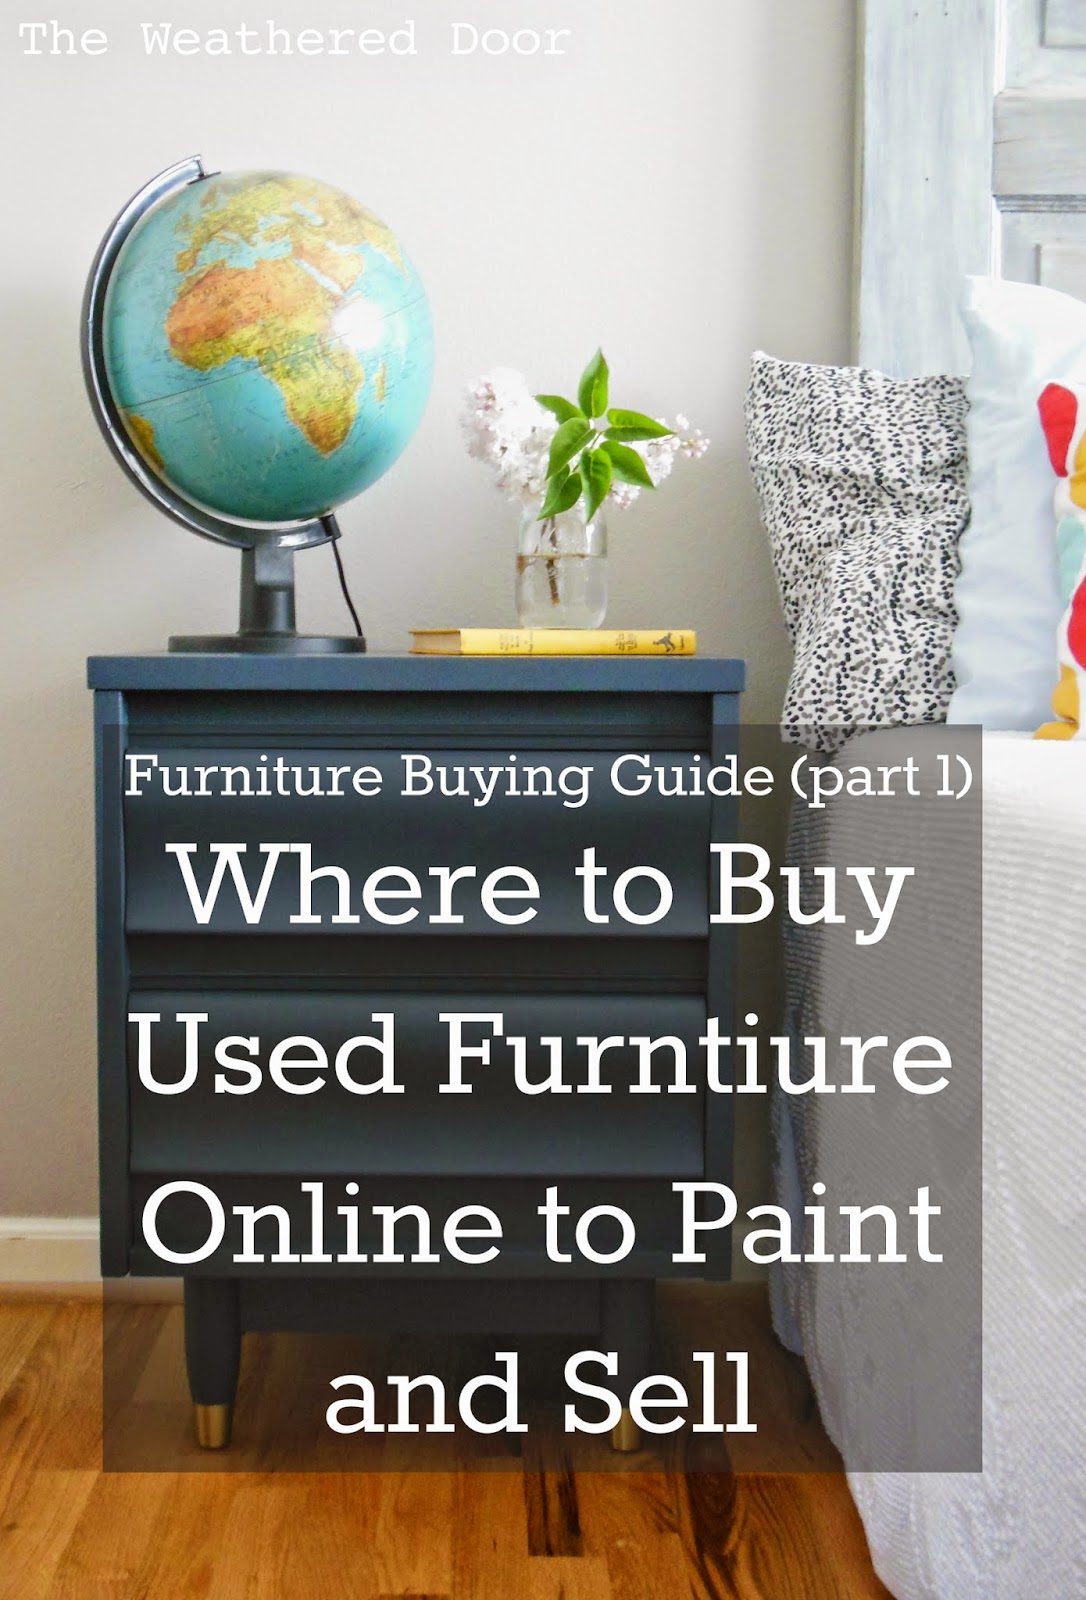 buy furniture online furniture buying guide where to look for and buy used 11862 | Furniture%2BBuying%2BGuide %2Bwhere%2Bto%2Bbuy%2Bfurniture%2Bonline%2BWD%2B1